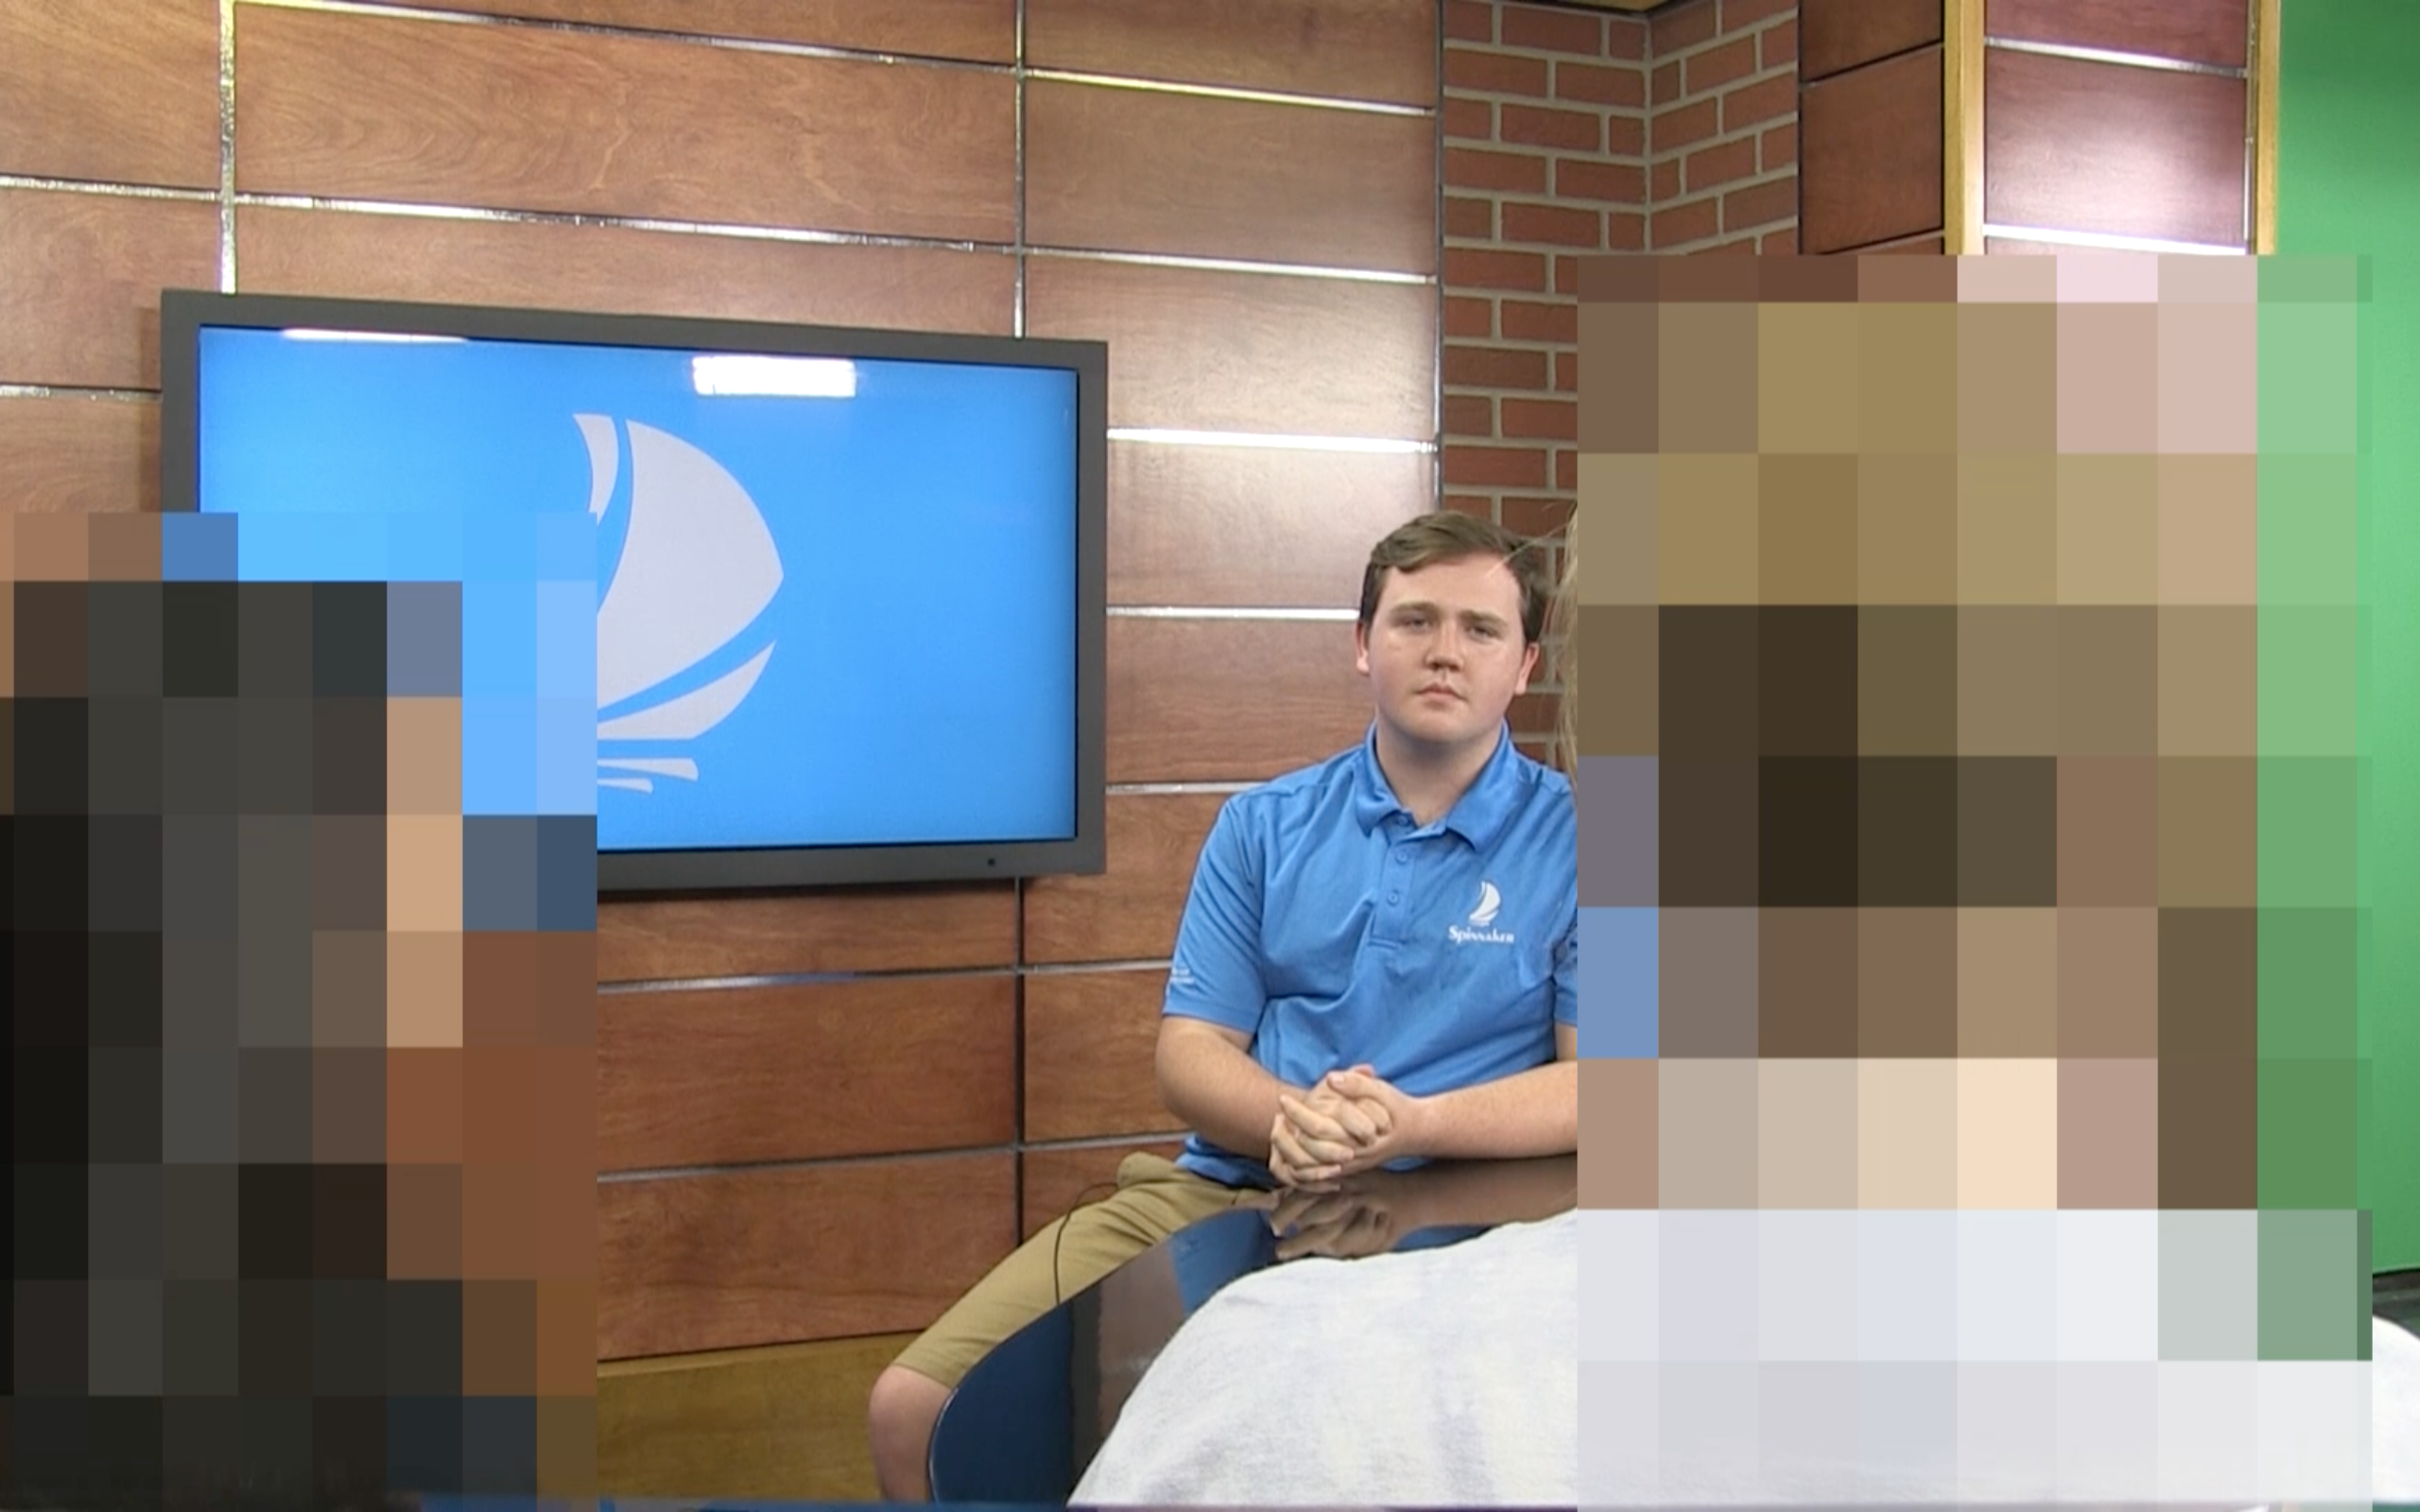 Exclusive: Spinnaker interviews eyewitnesses in fraternity jacket incident